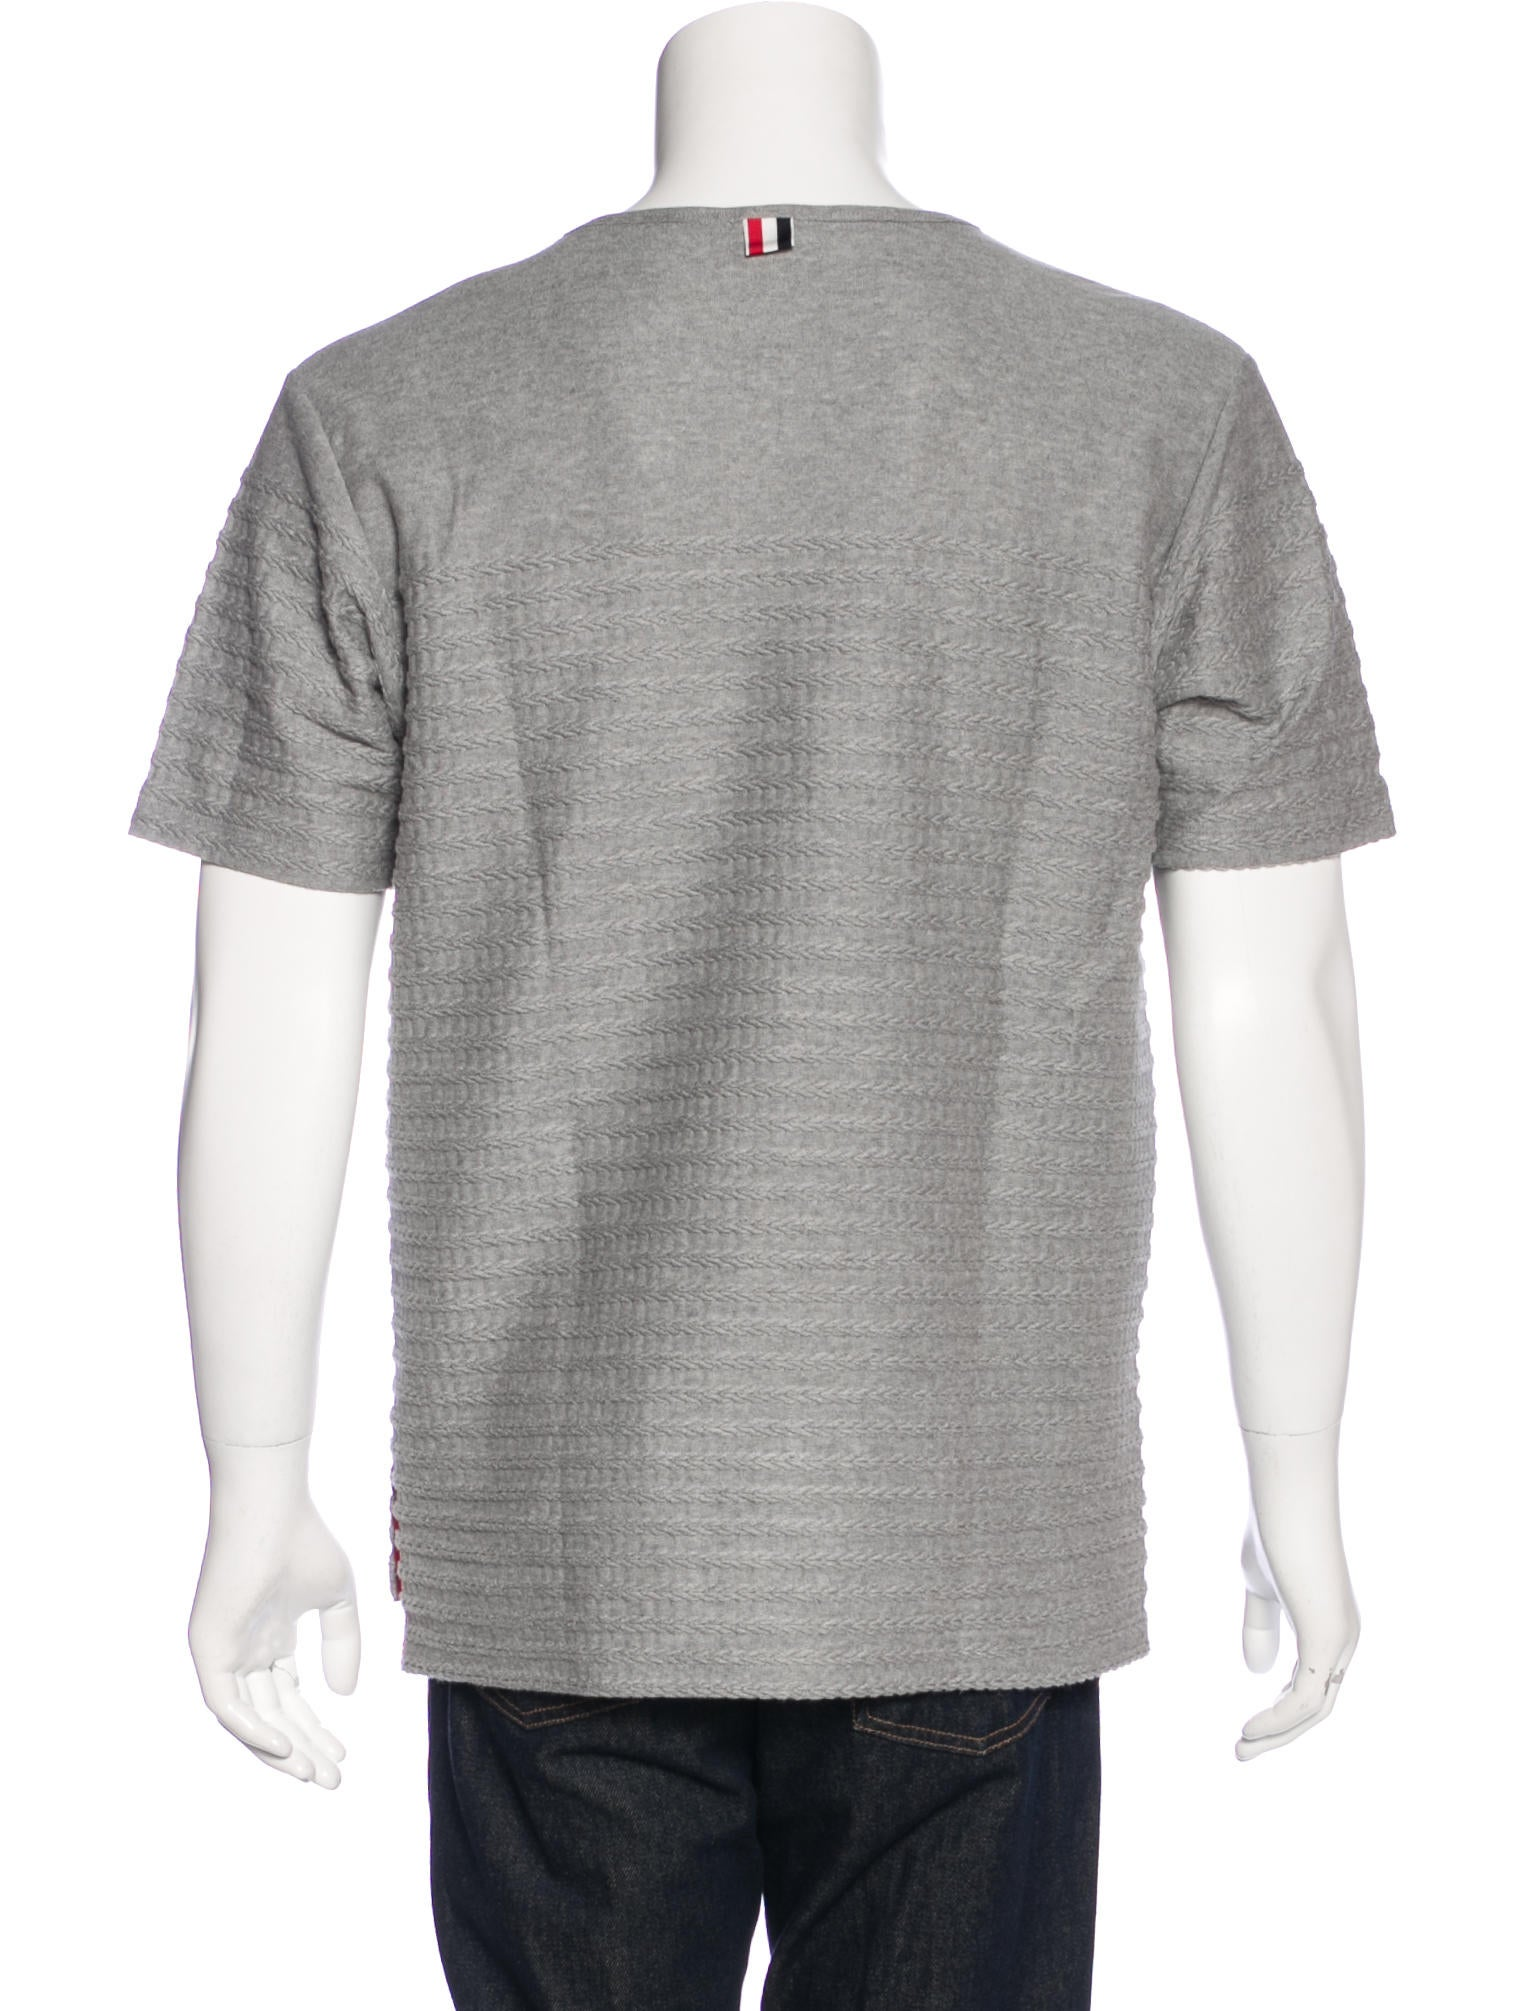 Thom browne embroidered scoop neck t shirt clothing for Thom browne t shirt